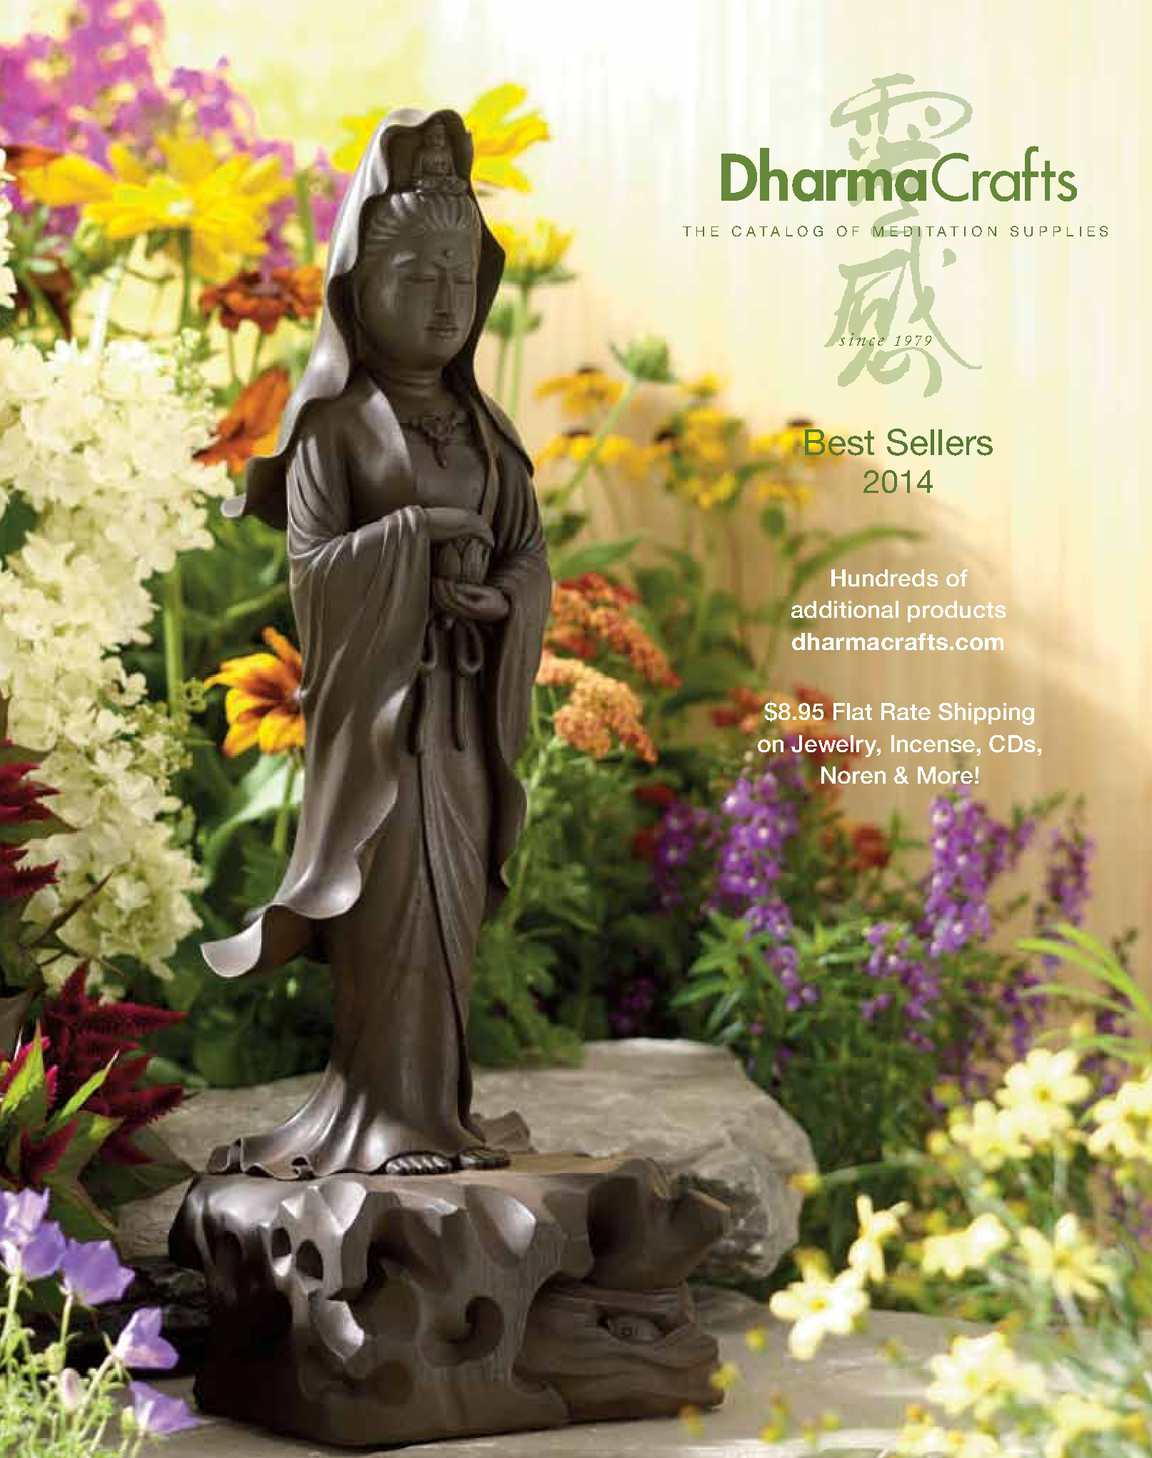 869eb853d Calaméo - 2014 DharmaCrafts Best-Sellers Catalog